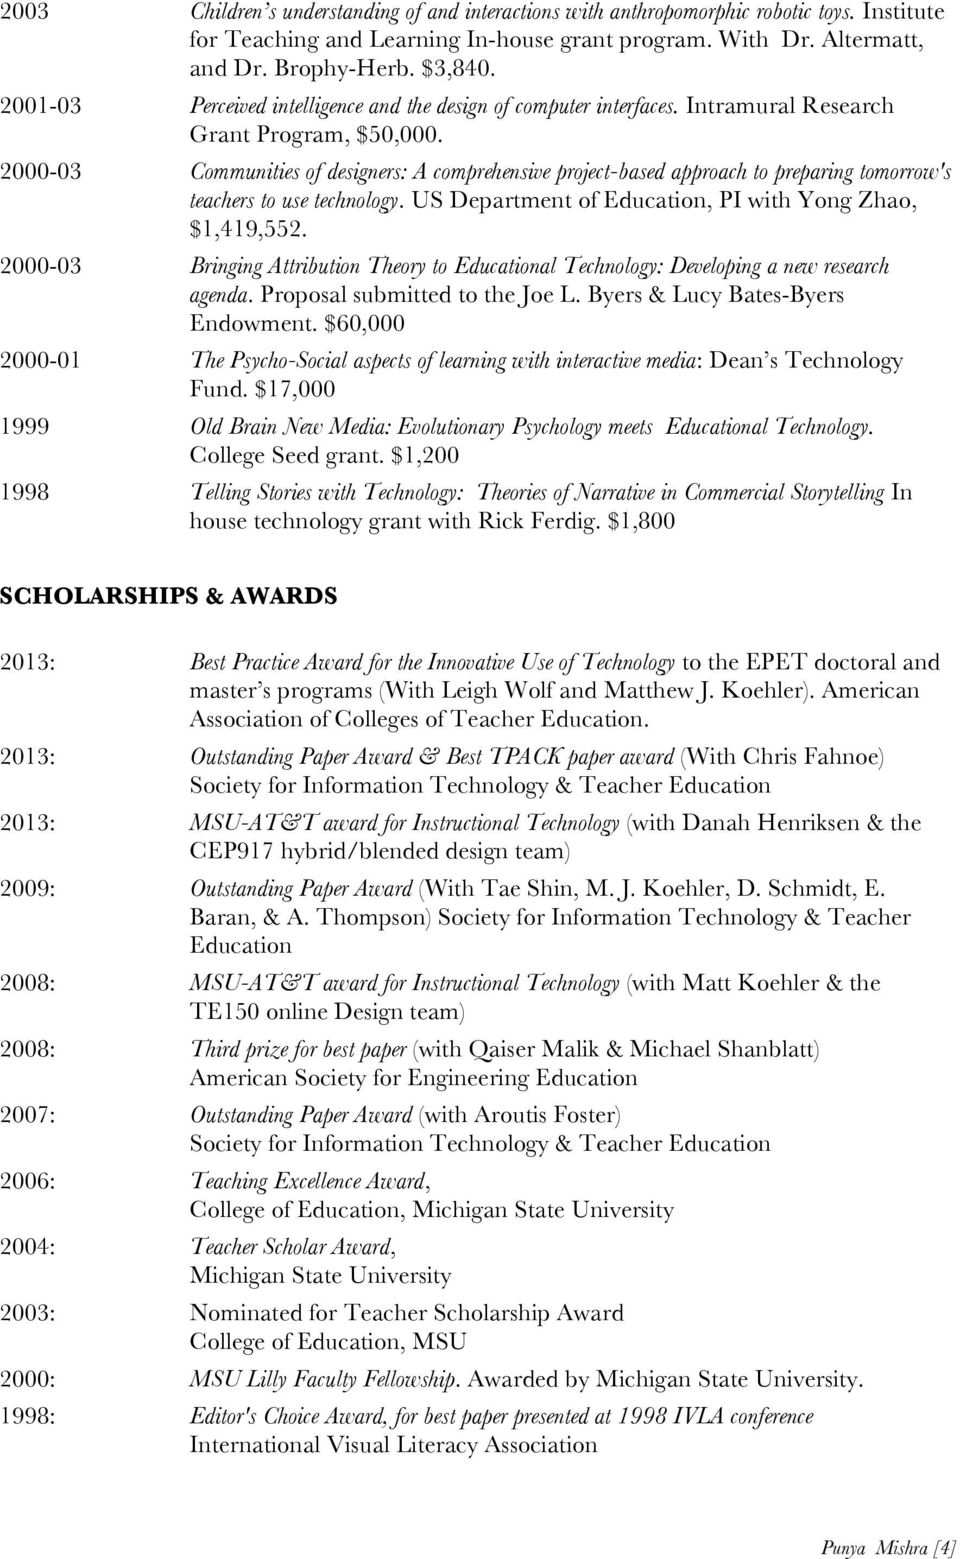 2000-03 Communities of designers: A comprehensive project-based approach to preparing tomorrow's teachers to use technology. US Department of Education, PI with Yong Zhao, $1,419,552.